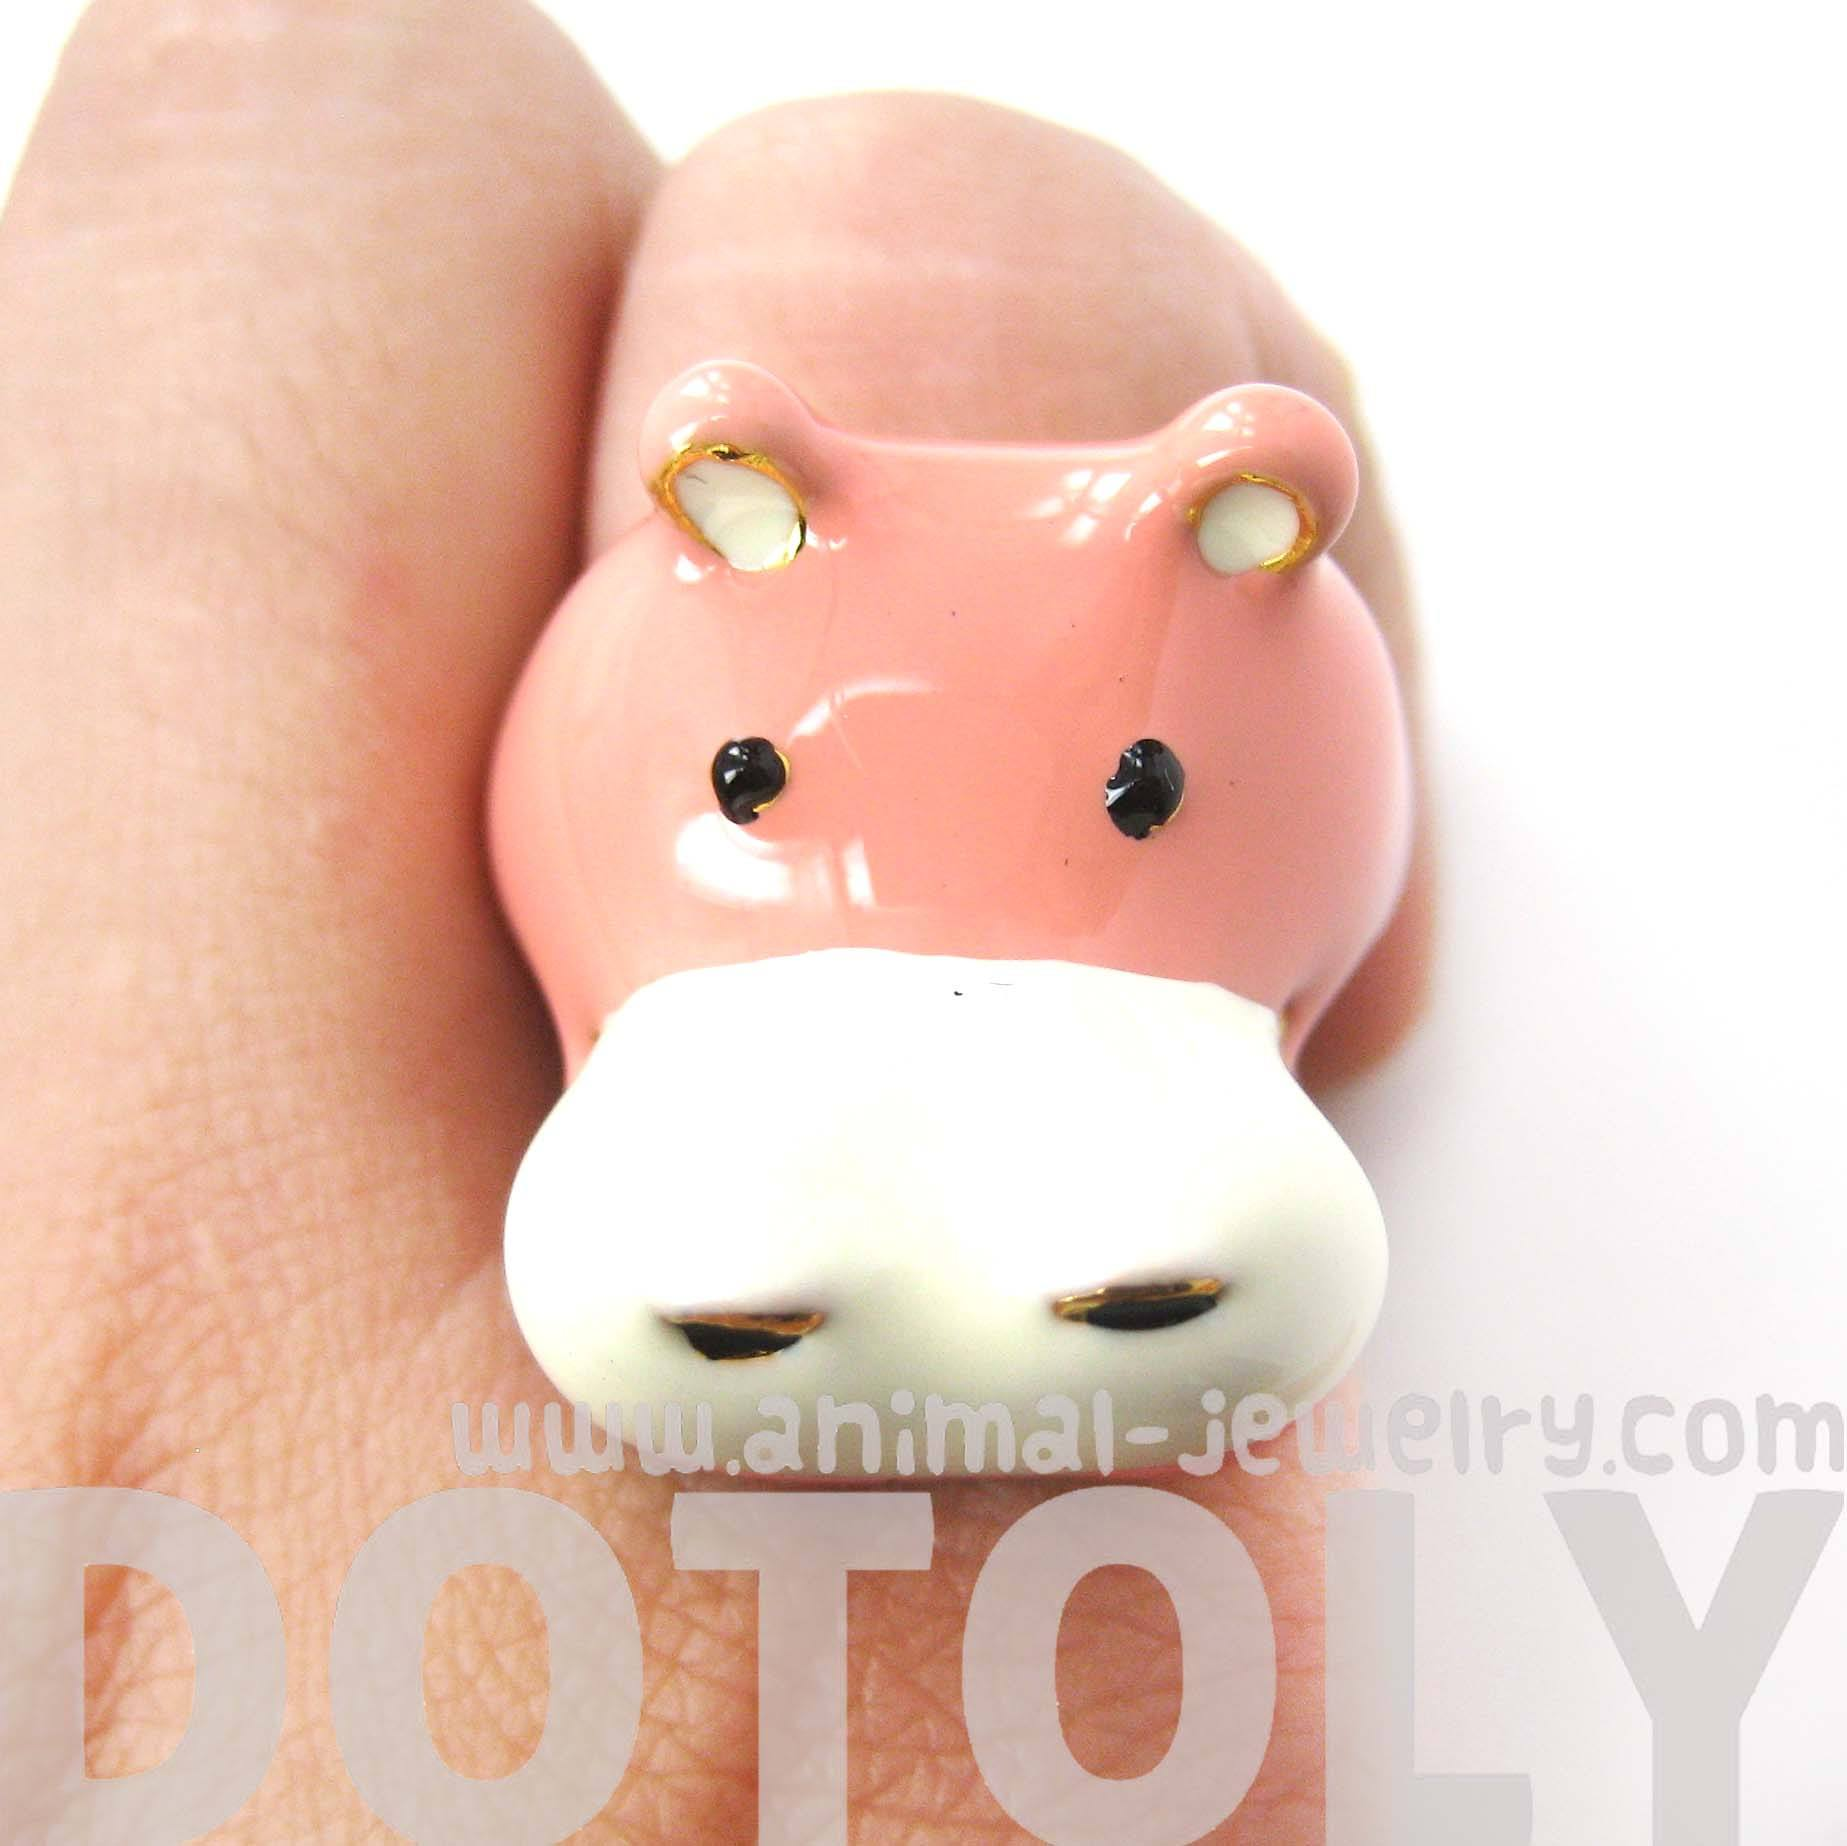 hippopotamus-hippo-shaped-enamel-animal-ring-in-us-size-6-and-7-limited-edition